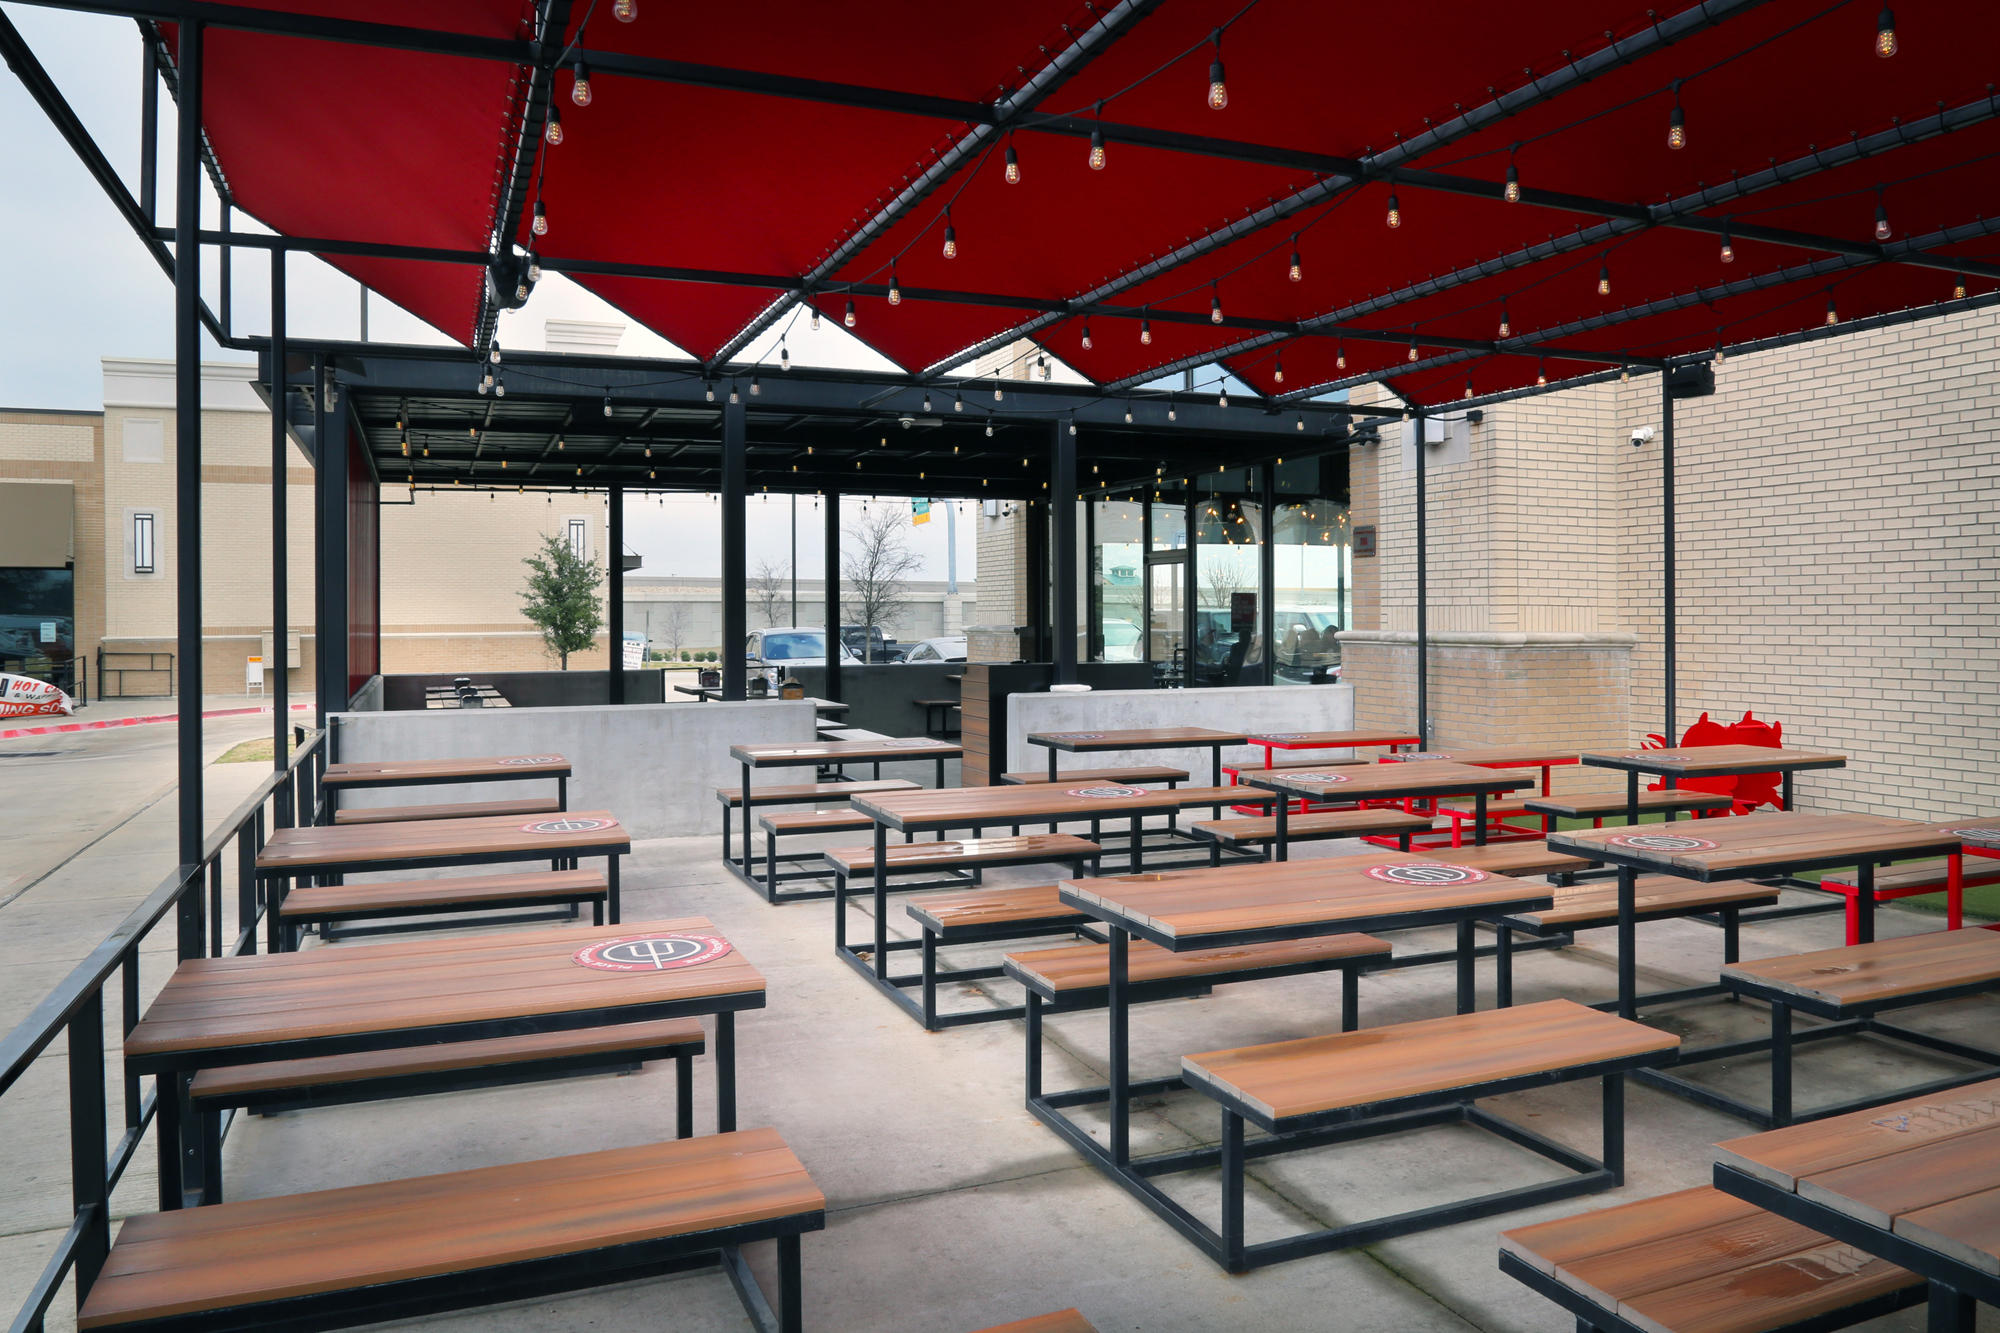 Torchy's Tacos image 11